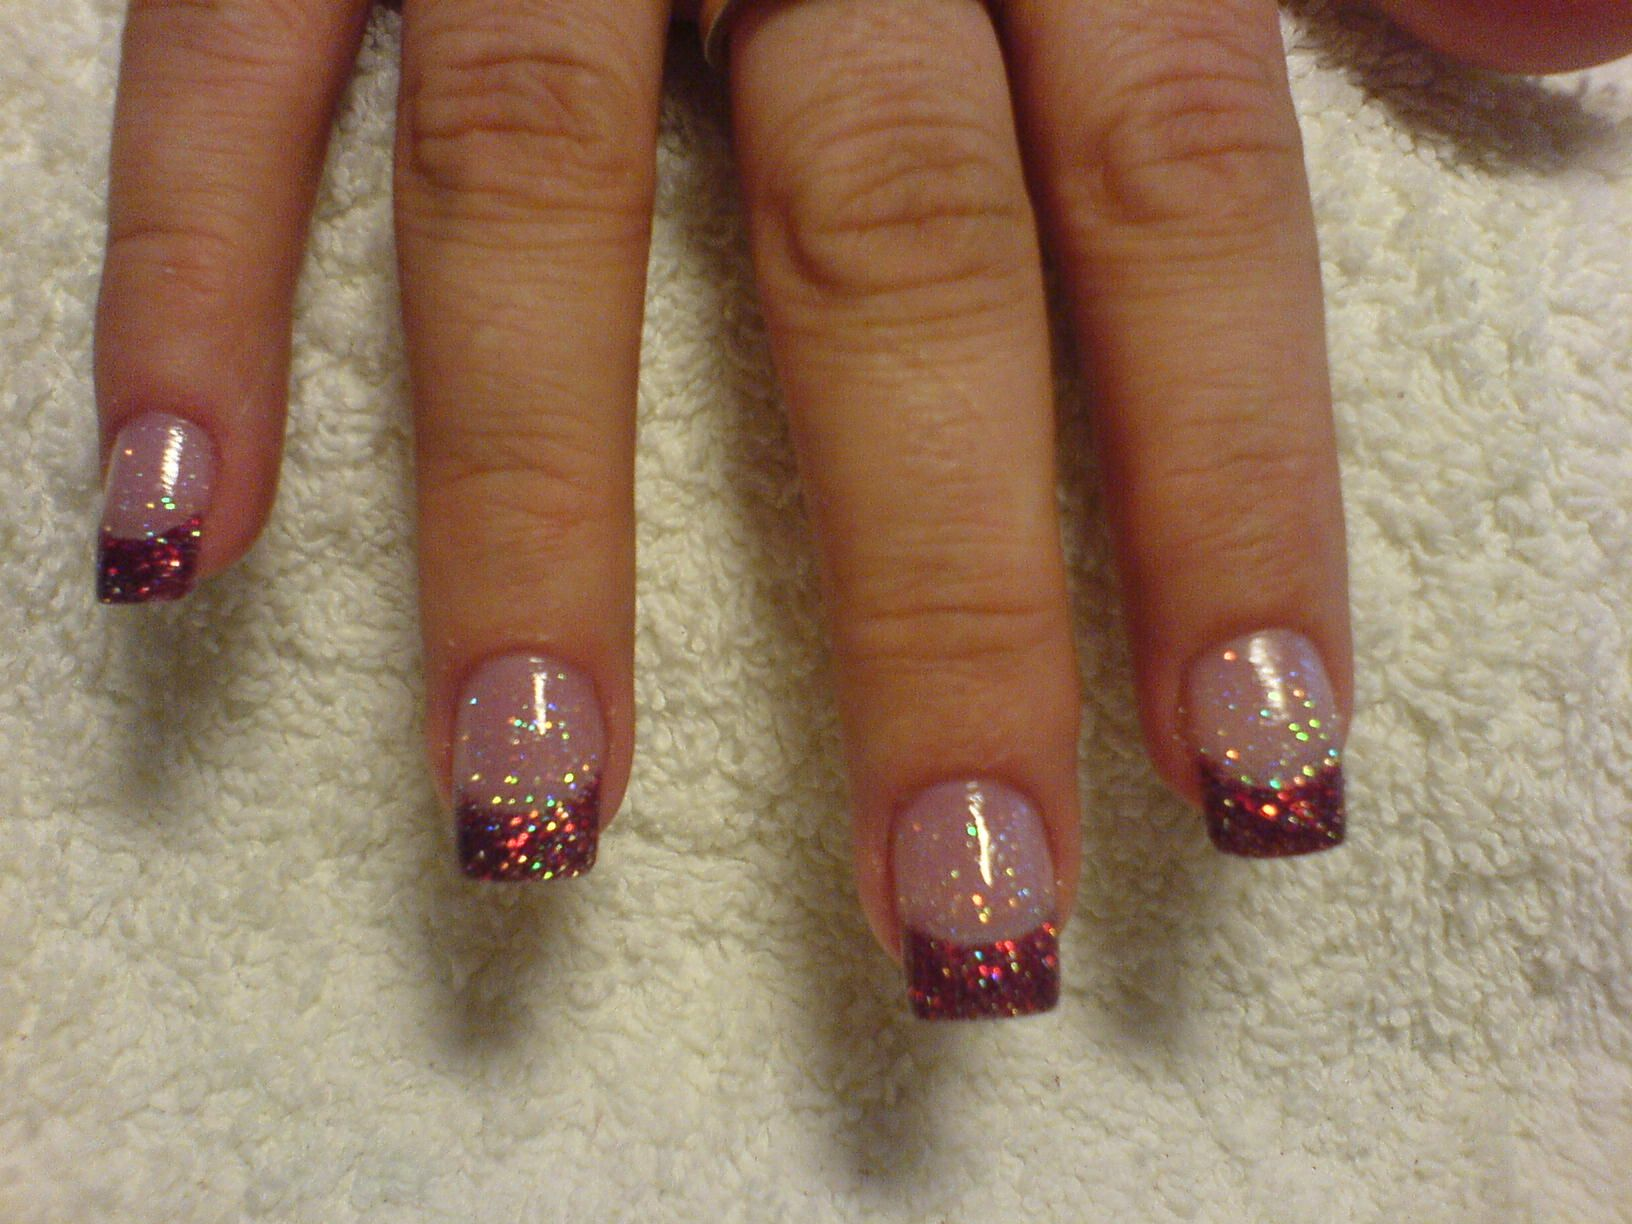 White And Gold Glitter Nail Art With Snowflake Glitter Design Nailart Design Goldglitter White Chris Gold Glitter Nails Winter Nails Acrylic Trendy Nails